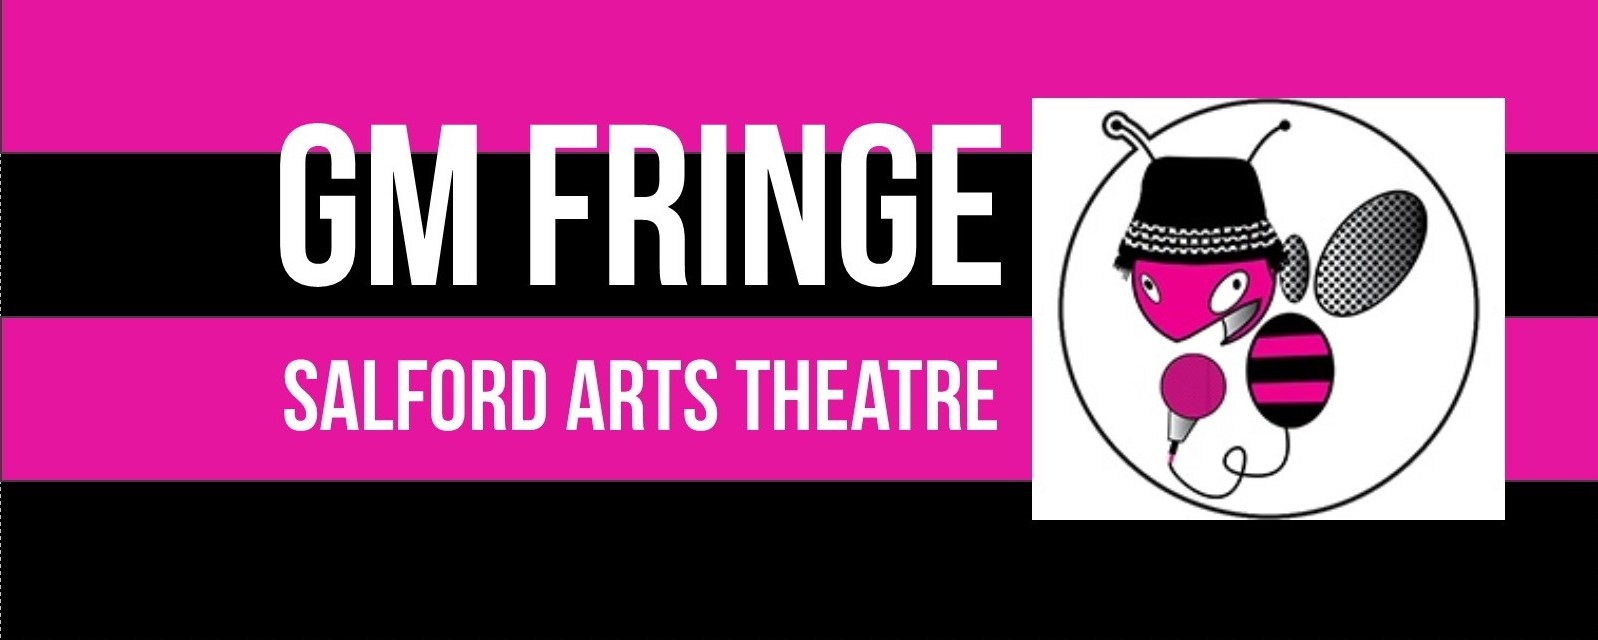 SALFORD ARTS THEATRE | GM FRINGE